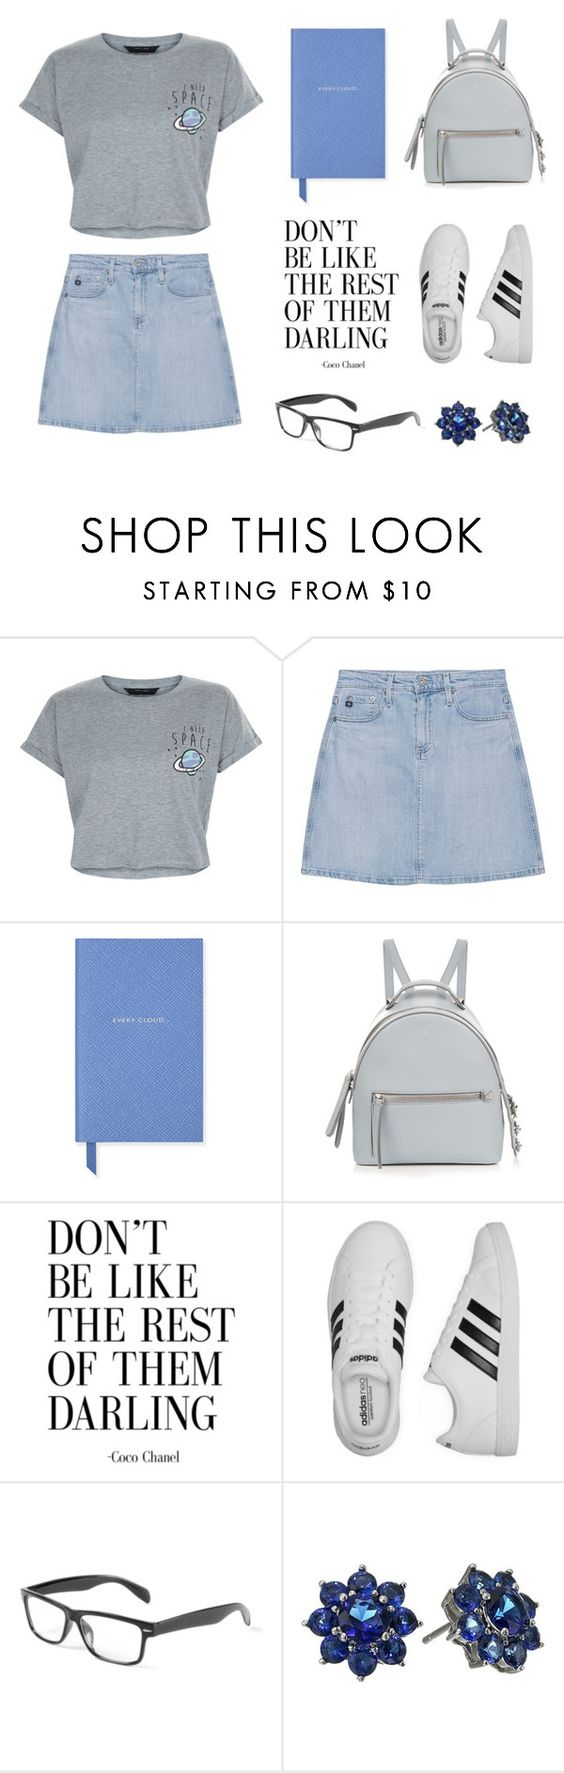 """Don't Be Like The Rest Of Them"" by euphoriana ❤ liked on Polyvore featuring New Look, AG Adriano Goldschmied, Smythson, Fendi, adidas and Nina"